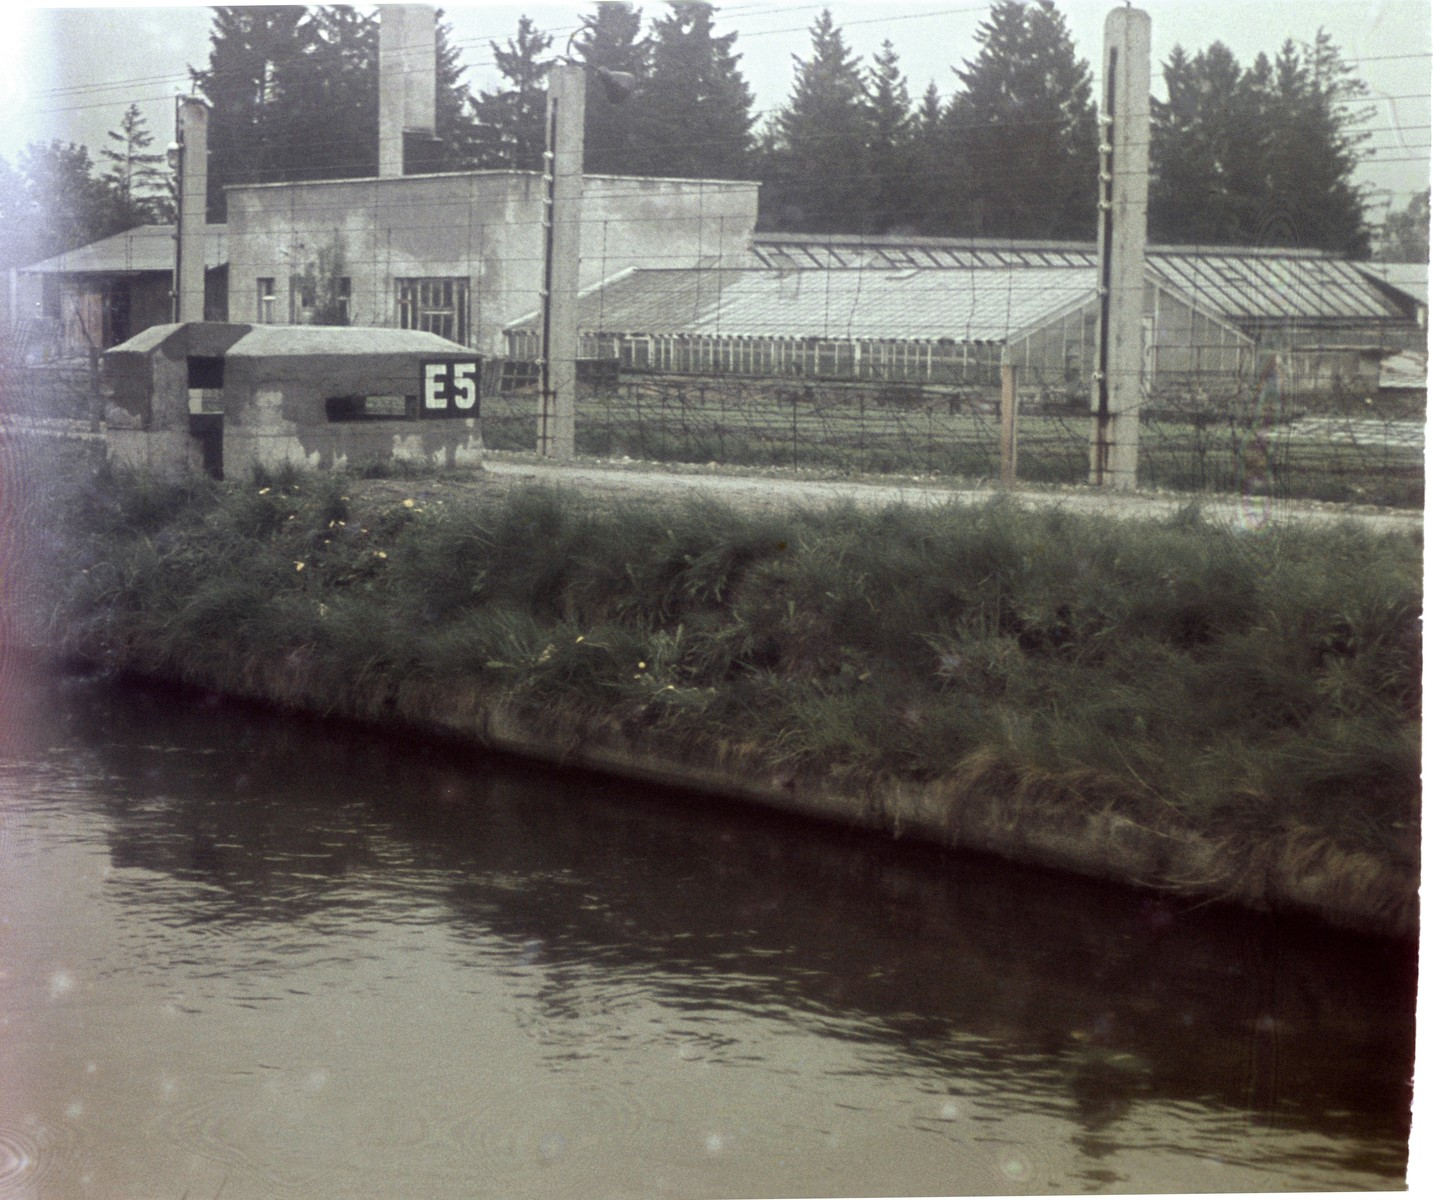 View of a section of the moat in the newly liberated Dachau concentration camp.